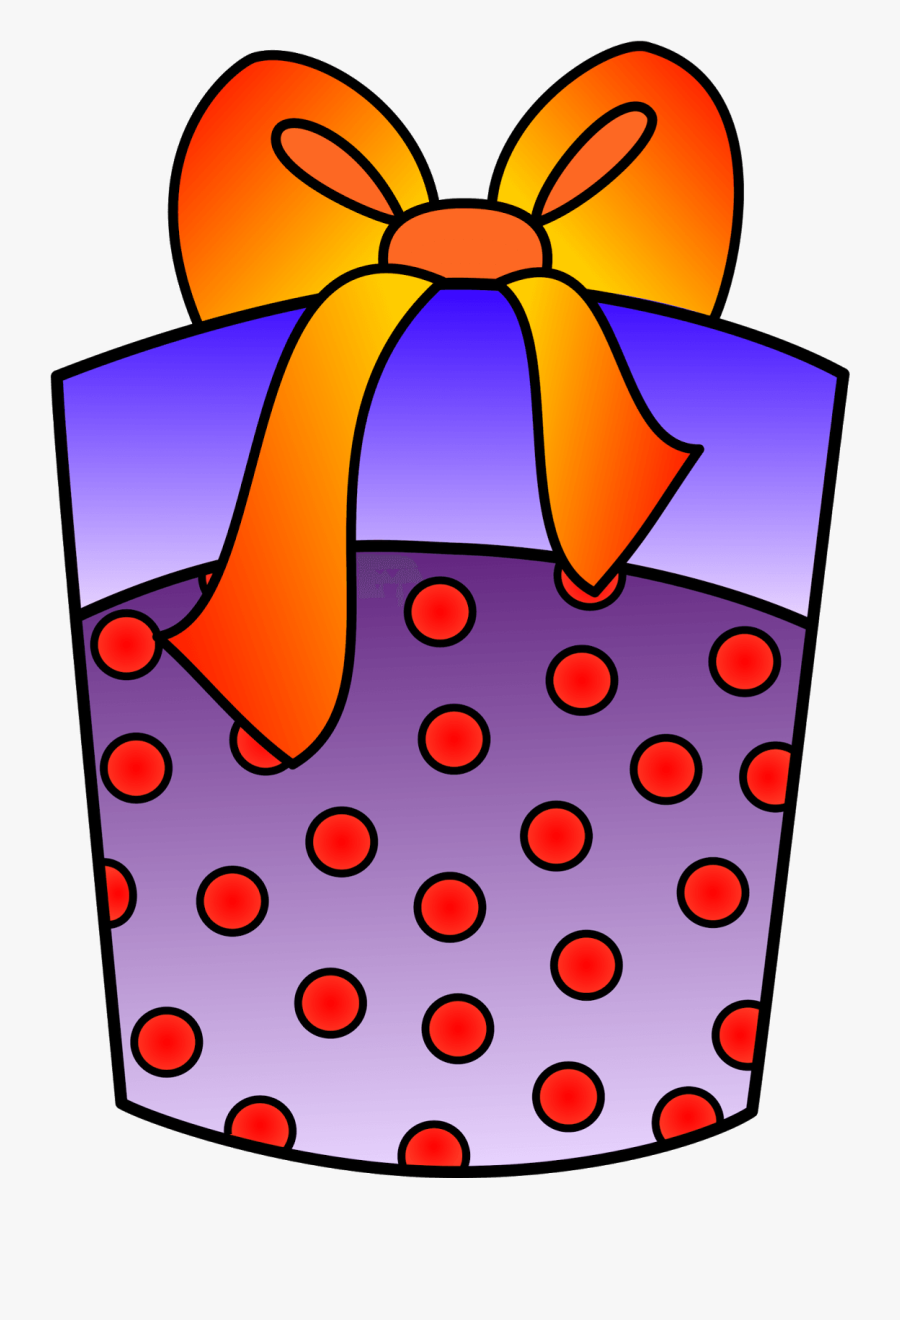 Christmas Present Clipart Free Images Image.